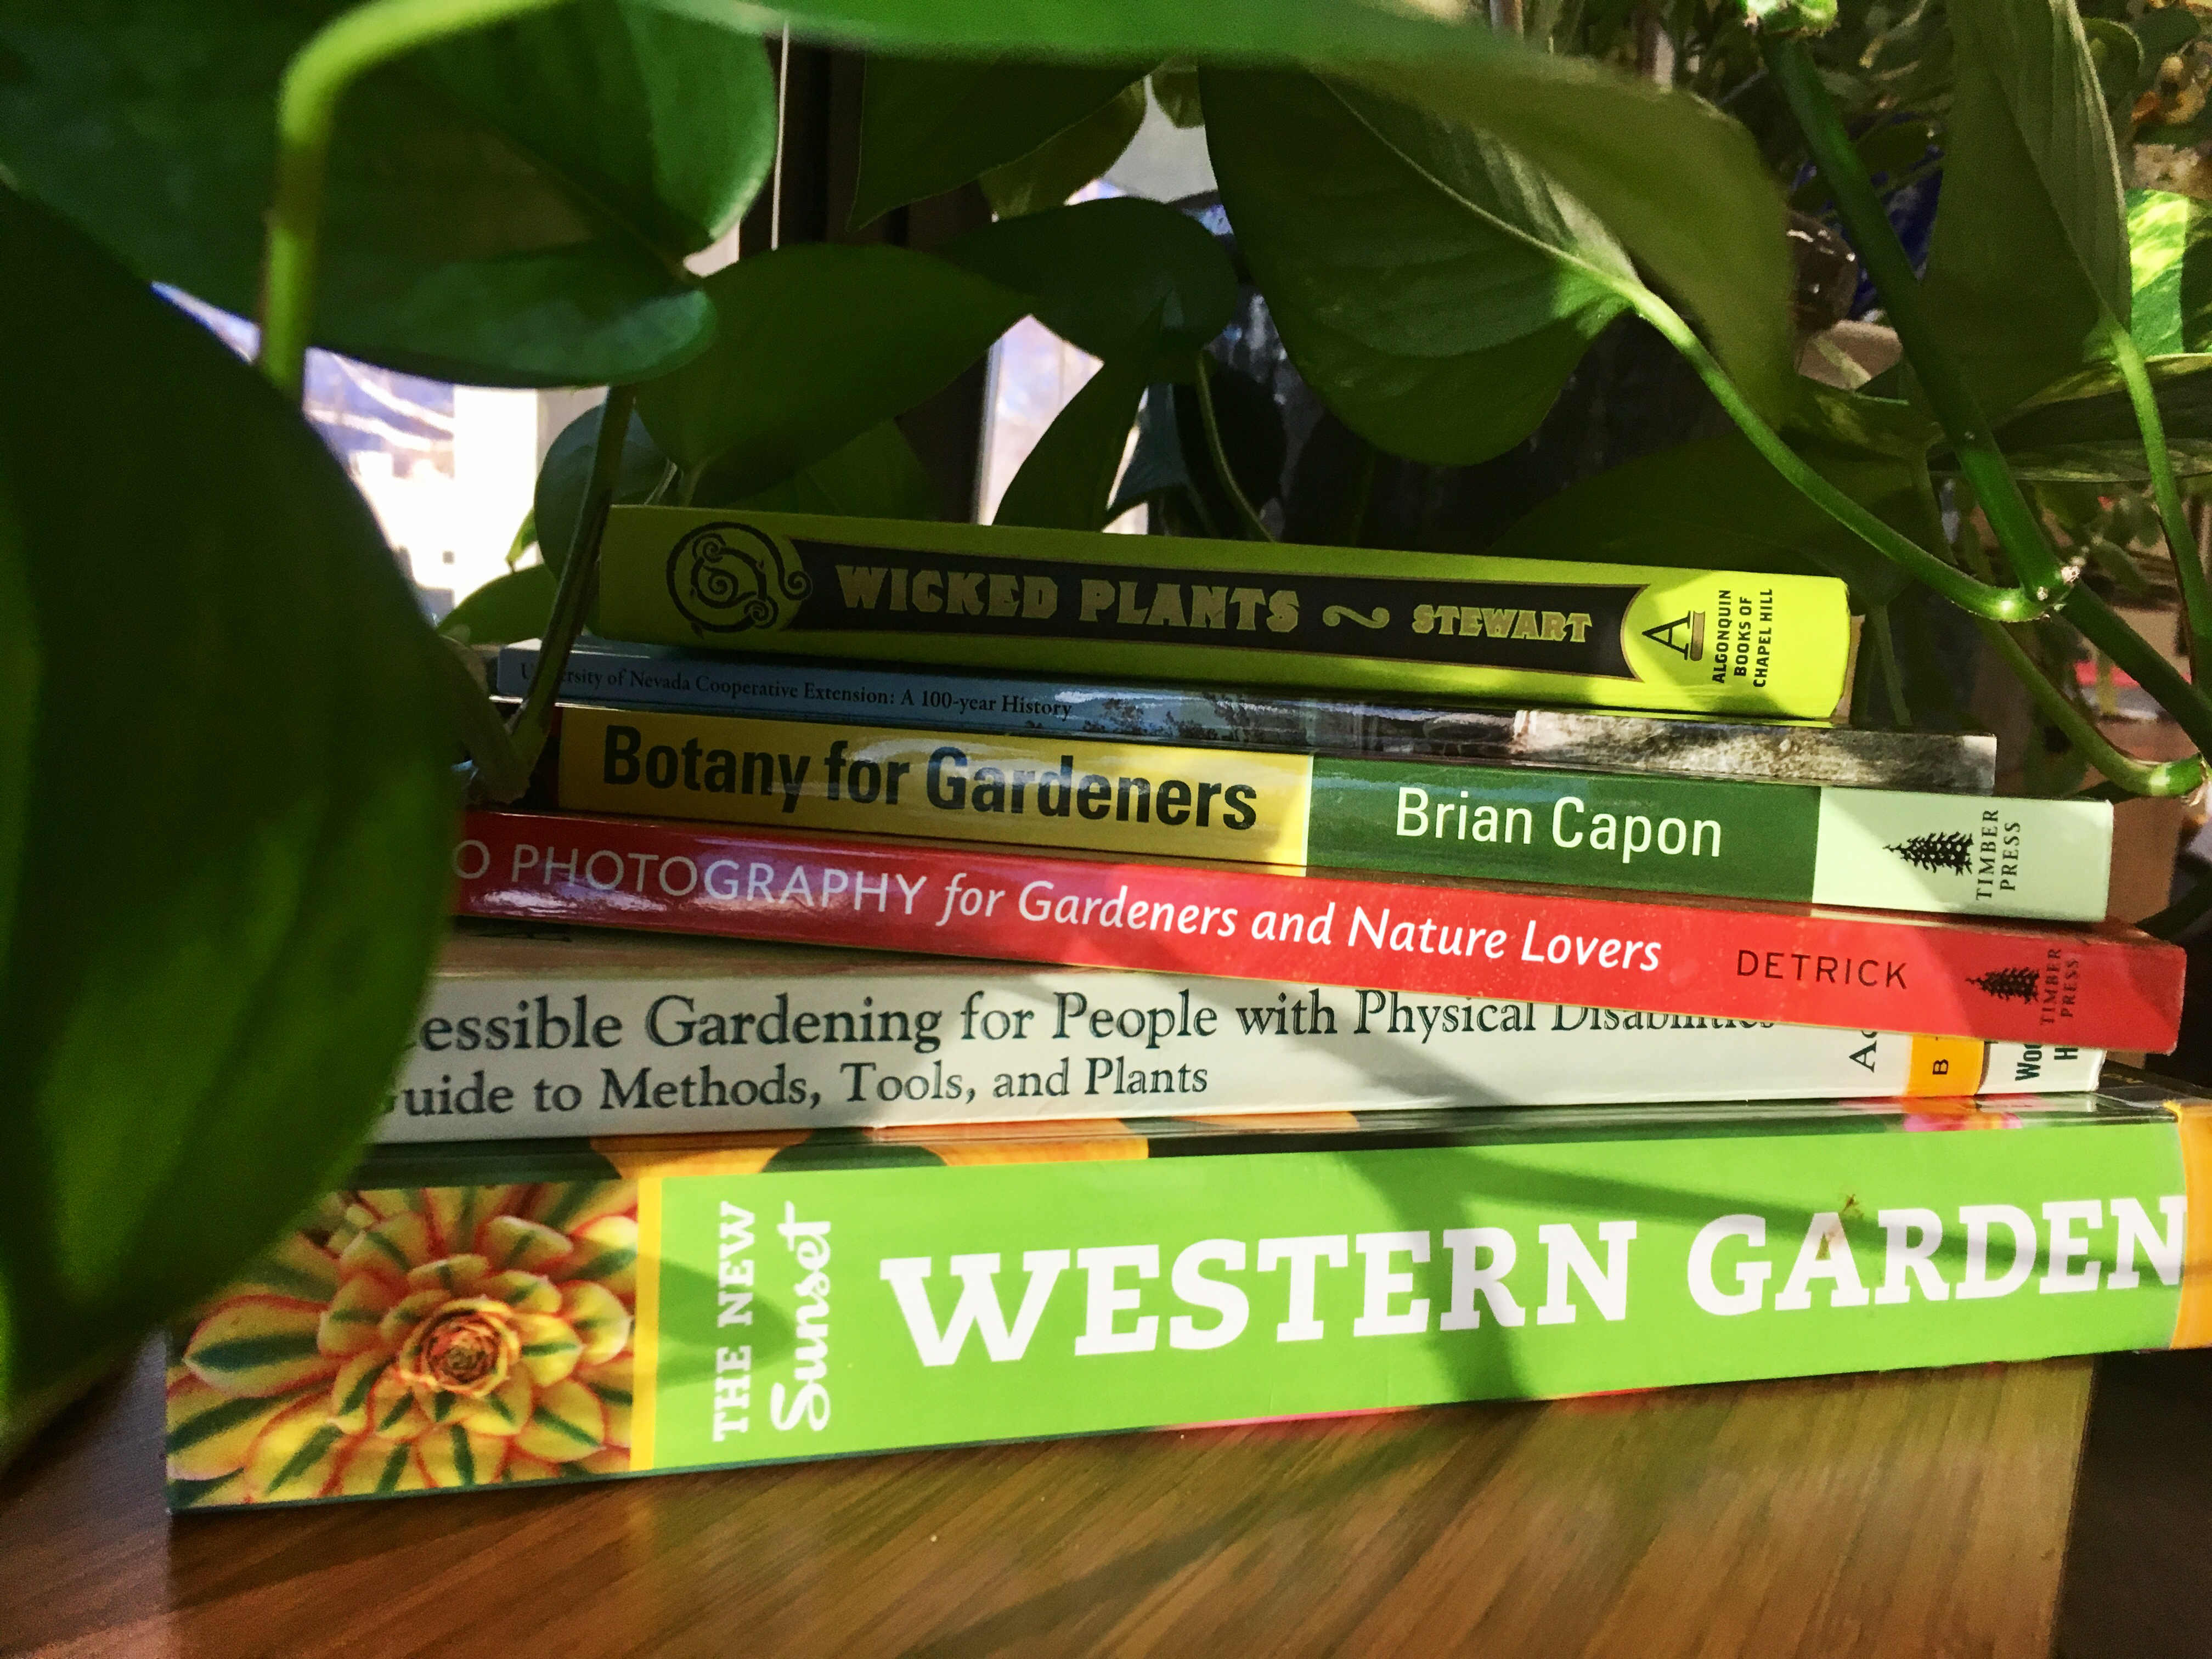 Winter Reading Grows Healthy Soils, Plants and Minds